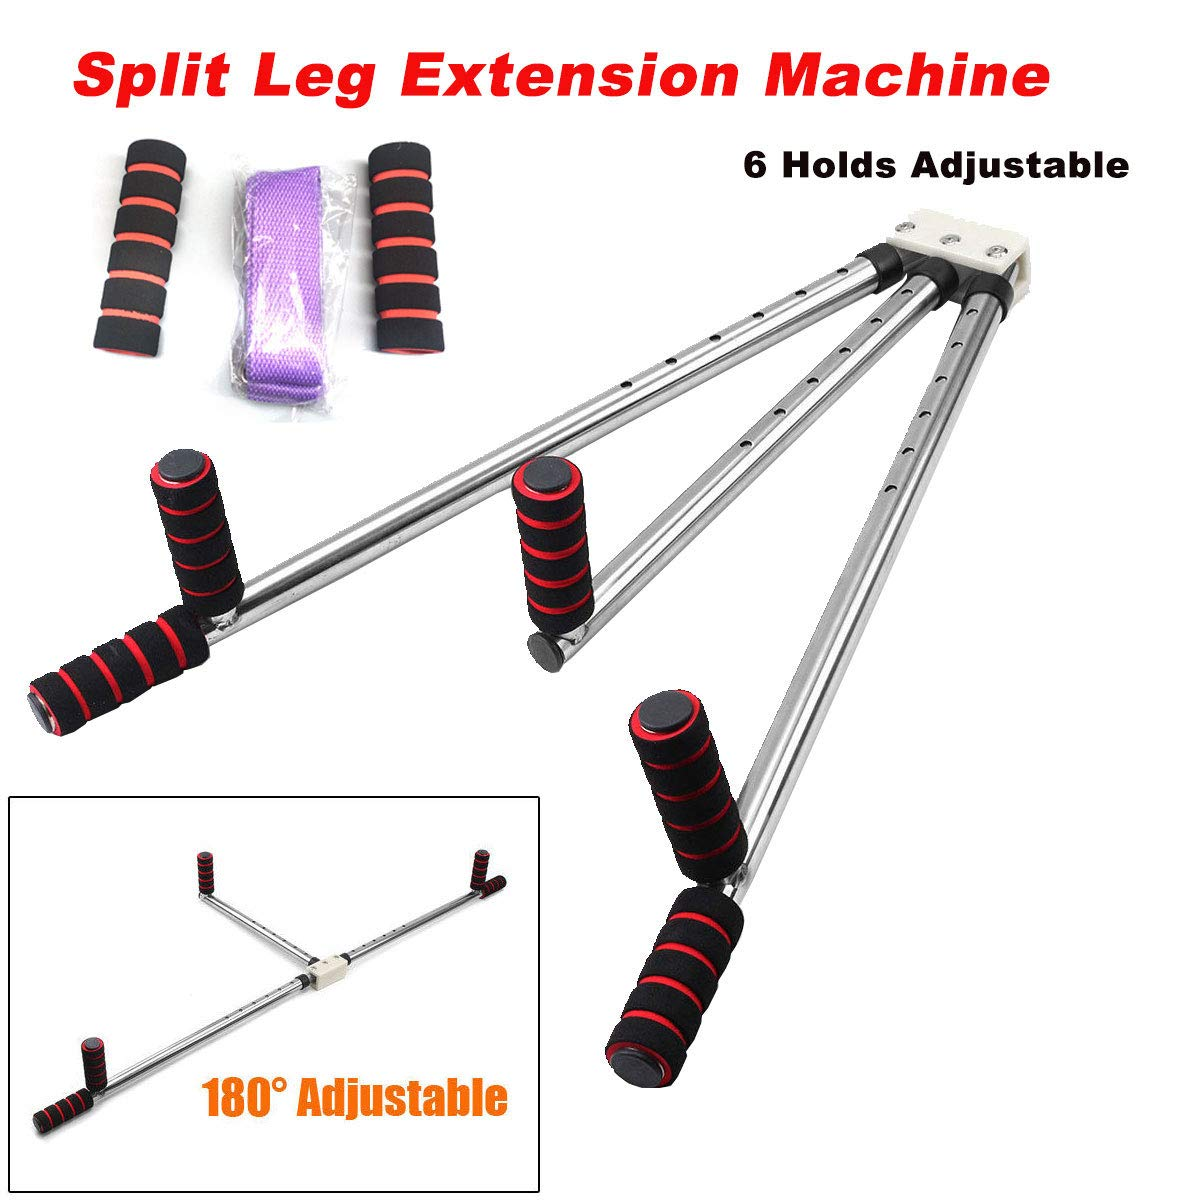 DOMINTY 3 Bar Leg Stretcher Leg Split Extension Device Stainless Steel Leg Support Yoga Exercise Martial Arts Gym Flexibility Training Machine-Sports Fitness Wellness